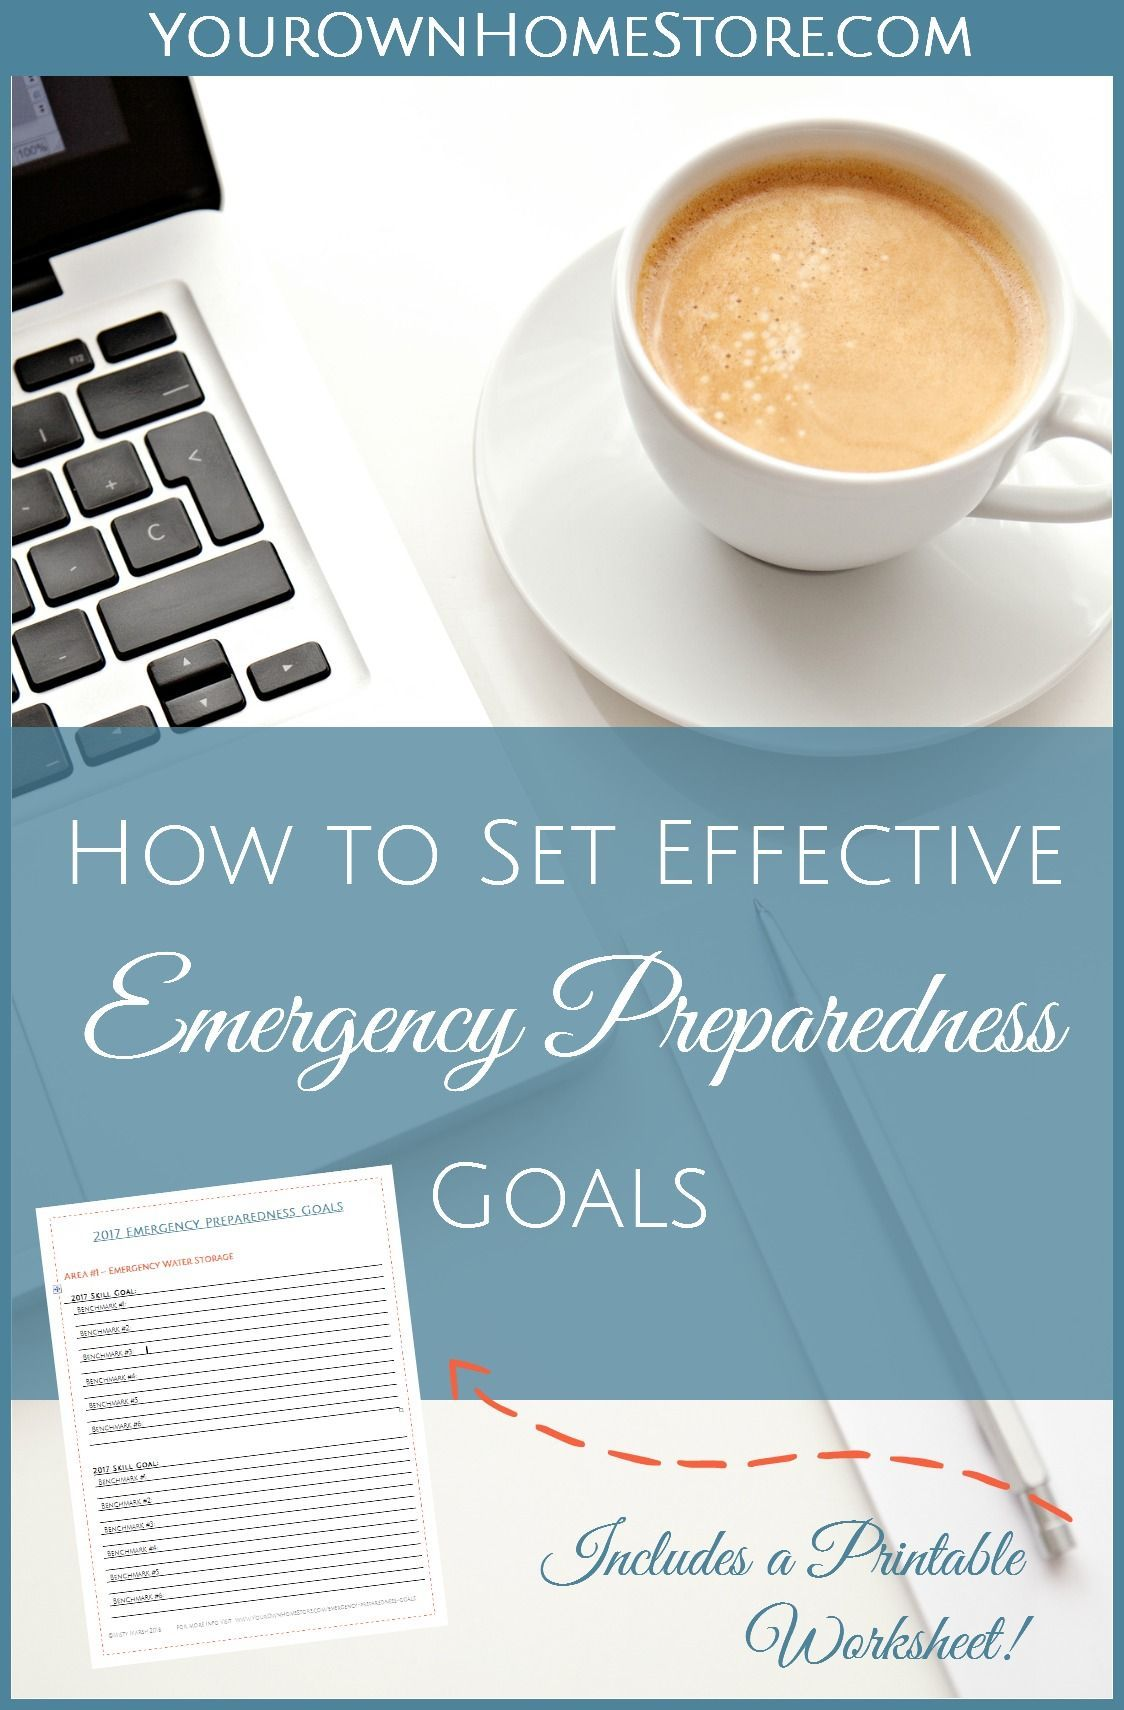 Set Effective Emergency Preparedness Goals Using This